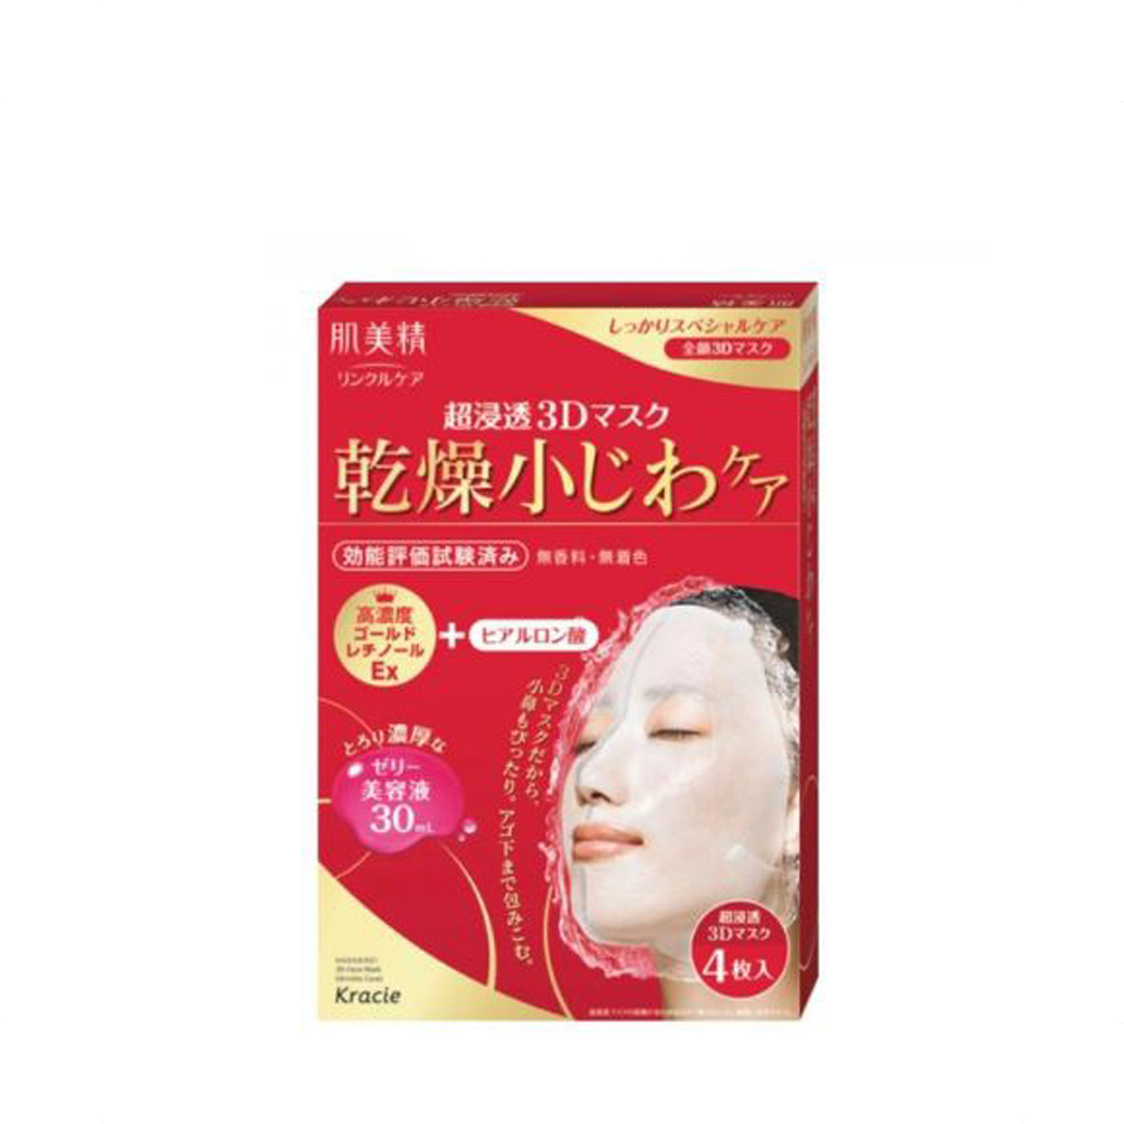 3D Face Mask Wrinkle-Care 4 Pieces